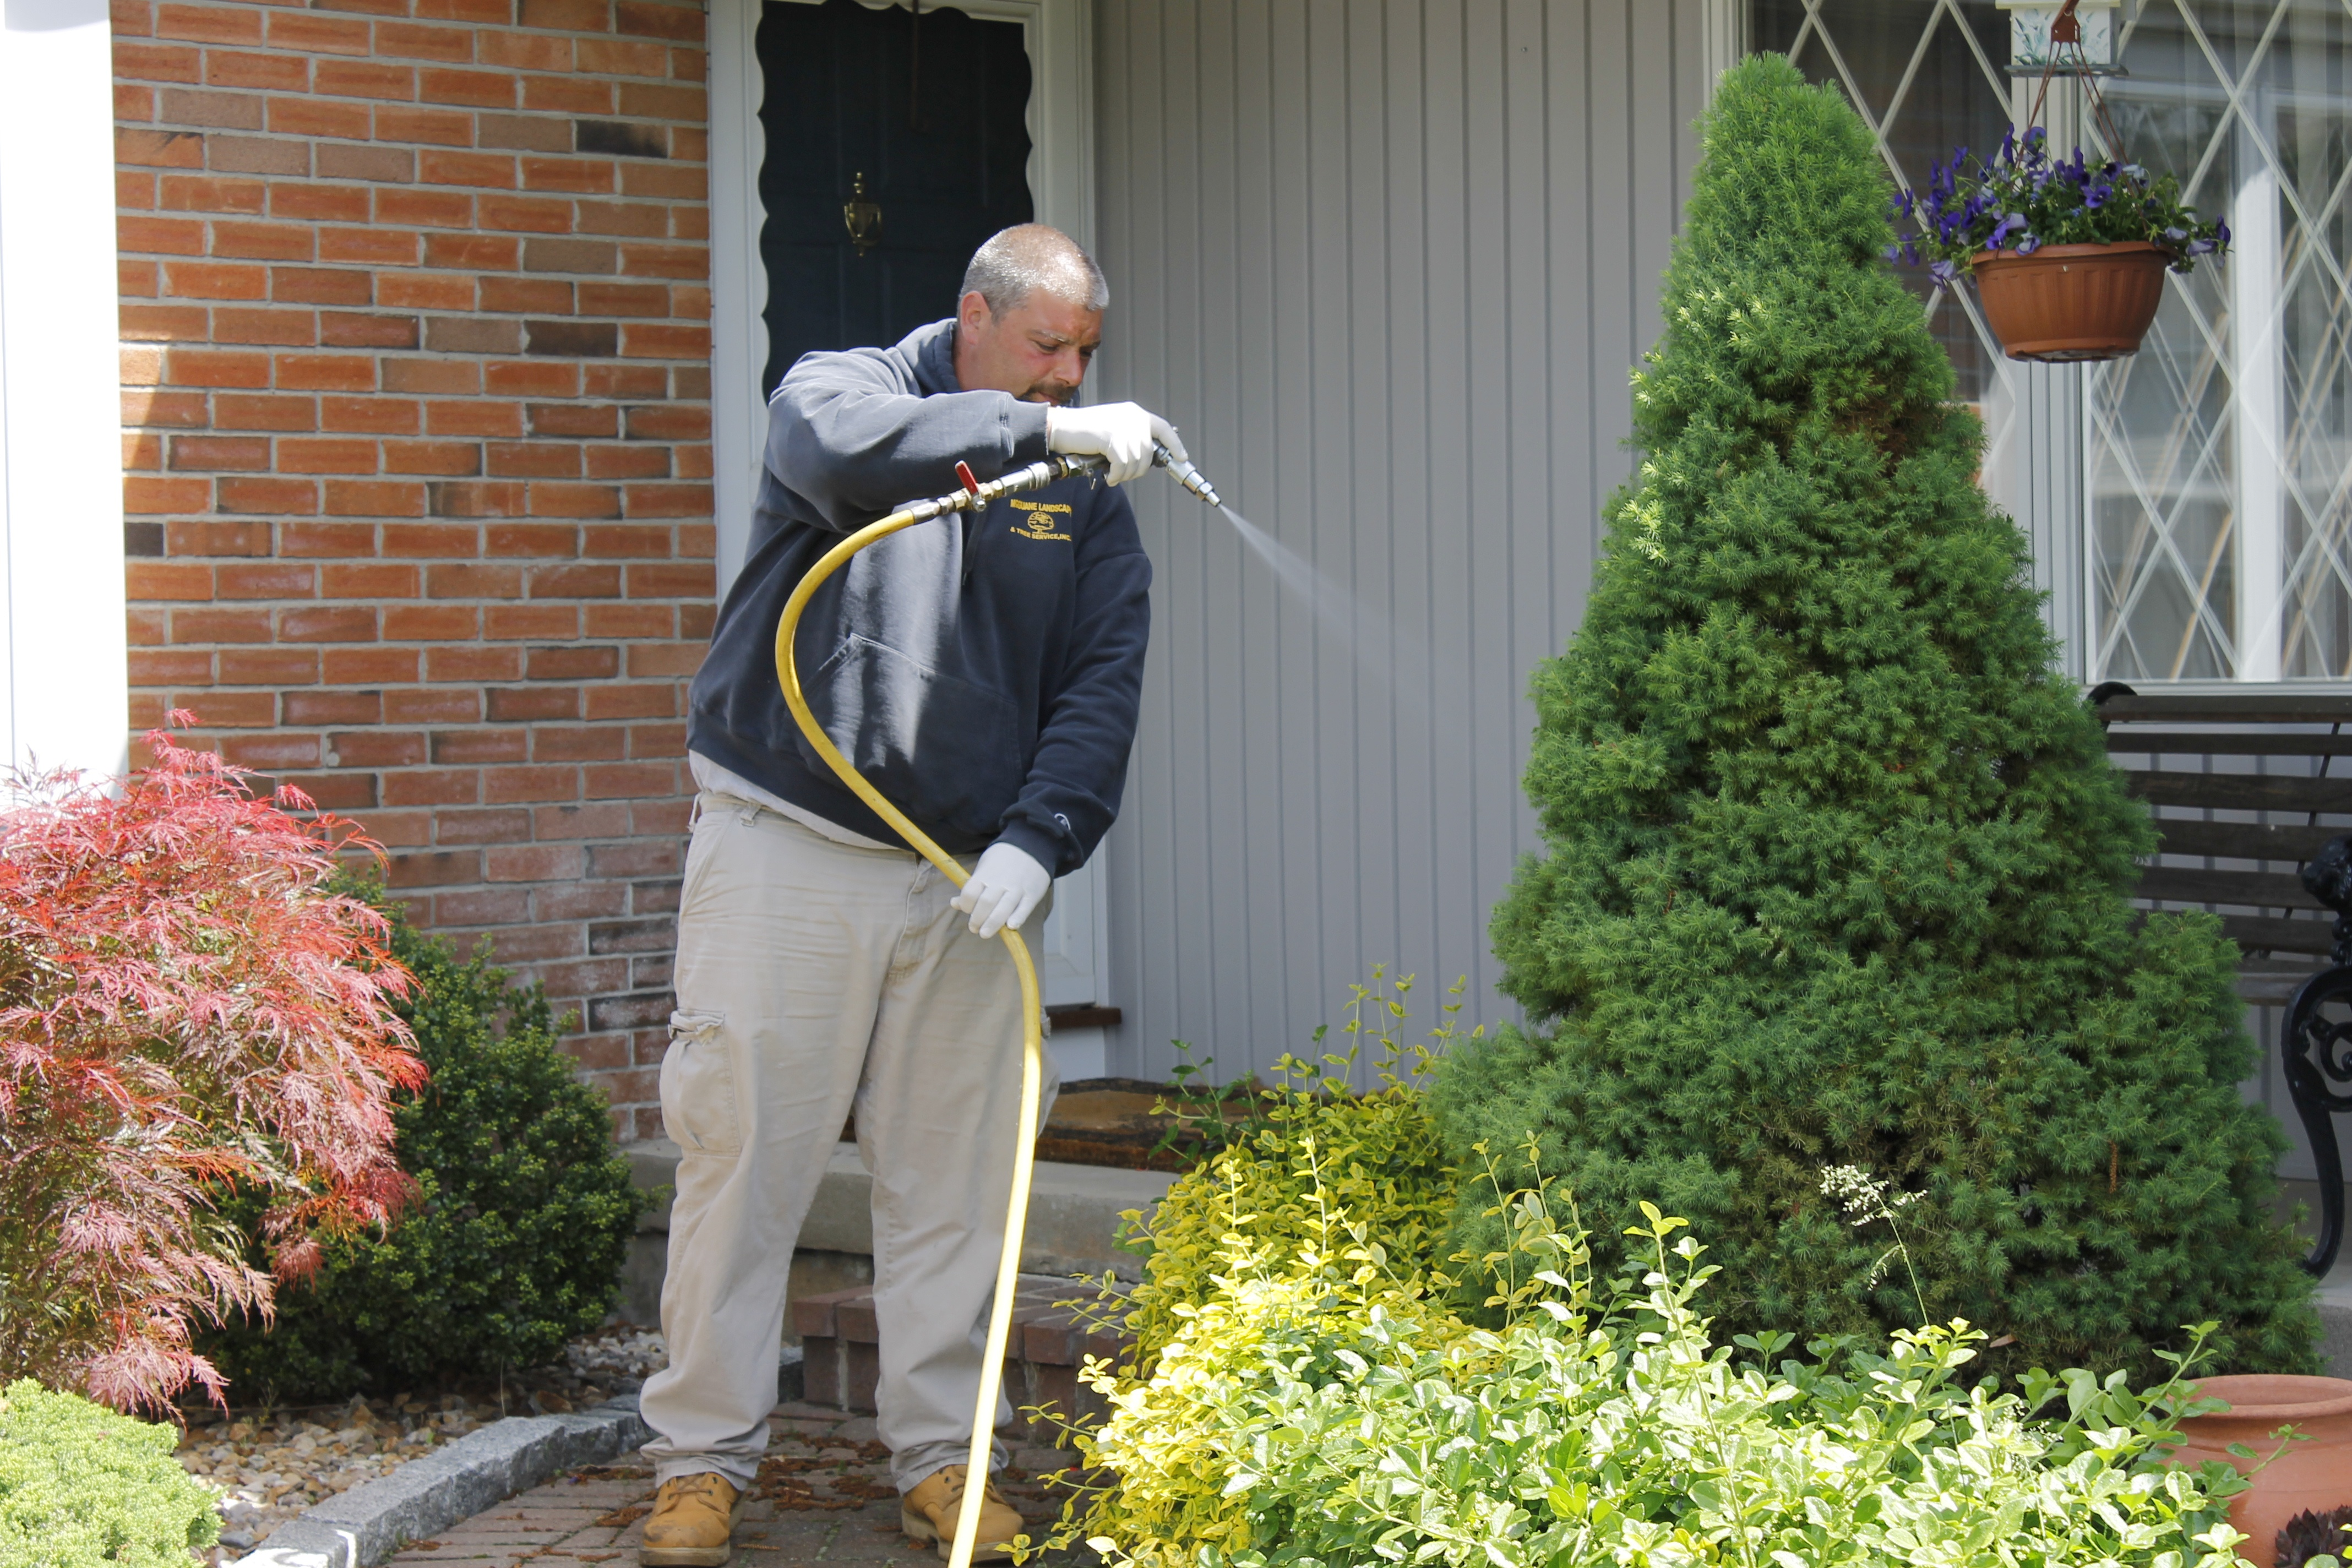 McguanesLandscaping_Spraying1.jpg